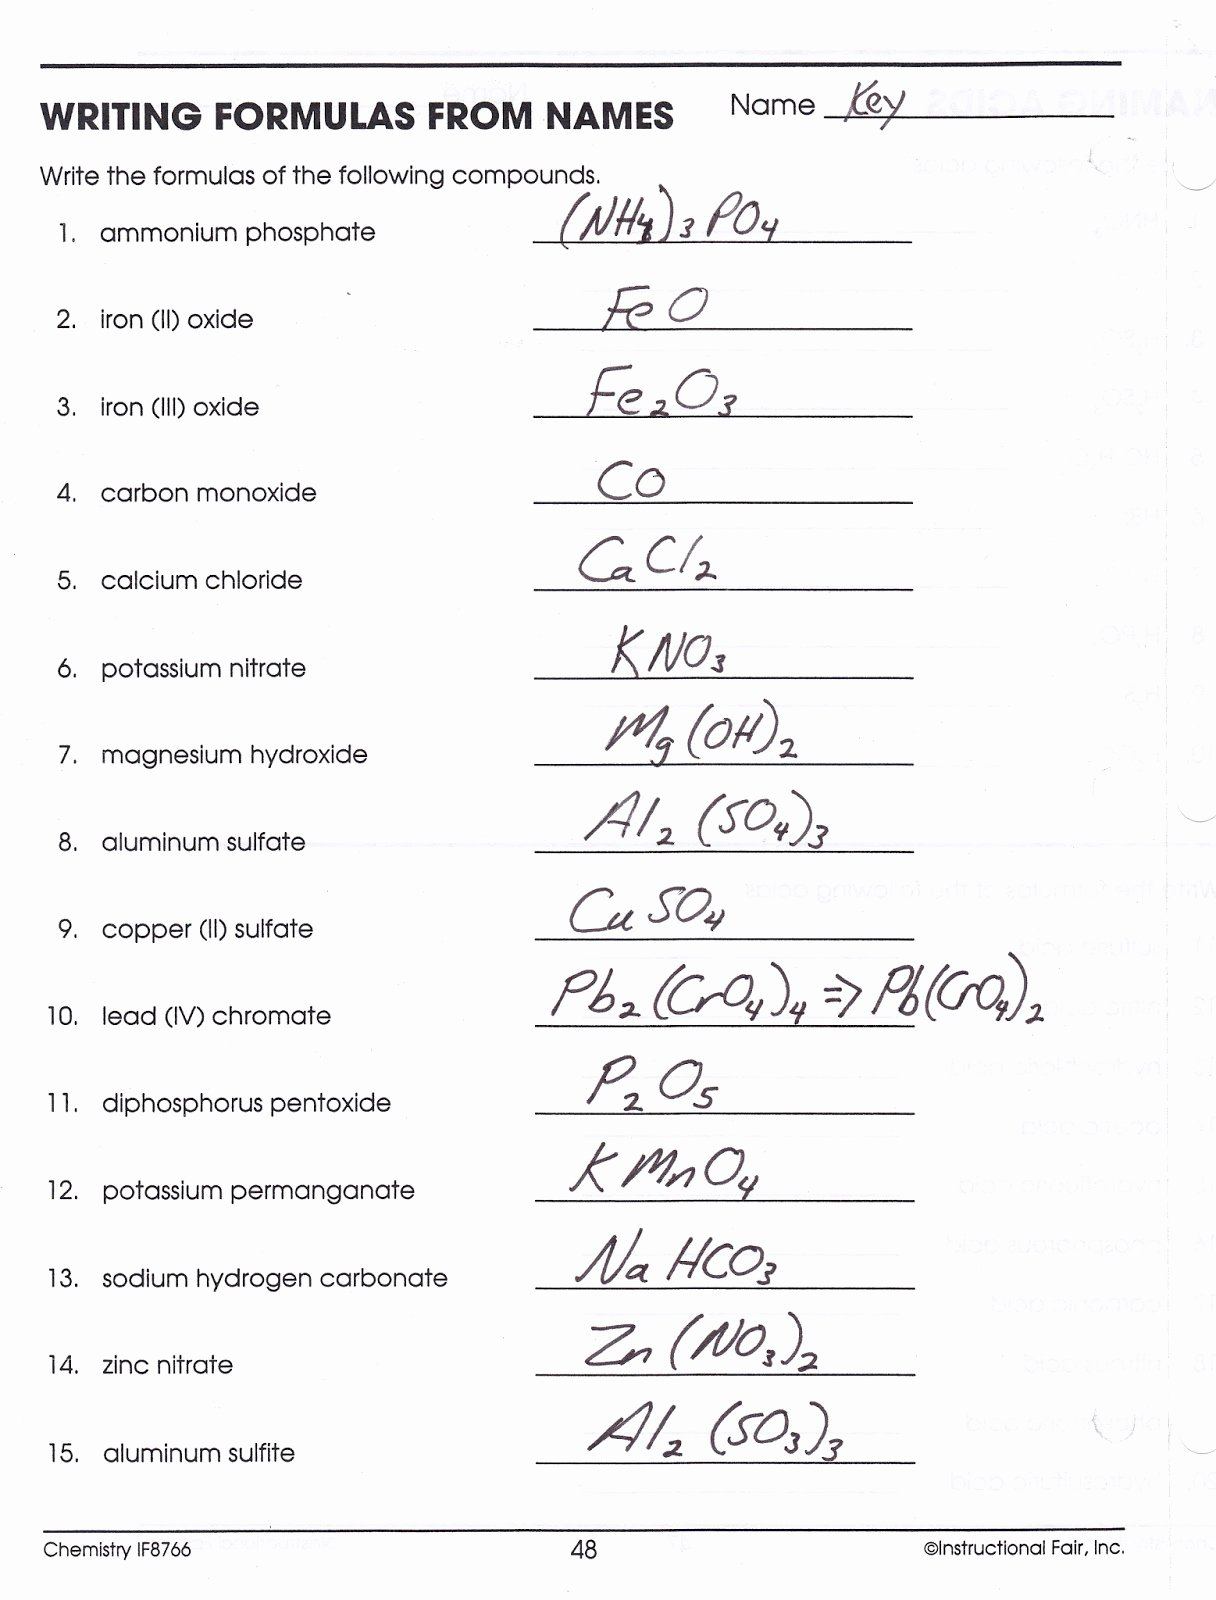 Chemical formula Worksheet Answers Inspirational Worksheet Writing Chemical formulas Worksheet Grass